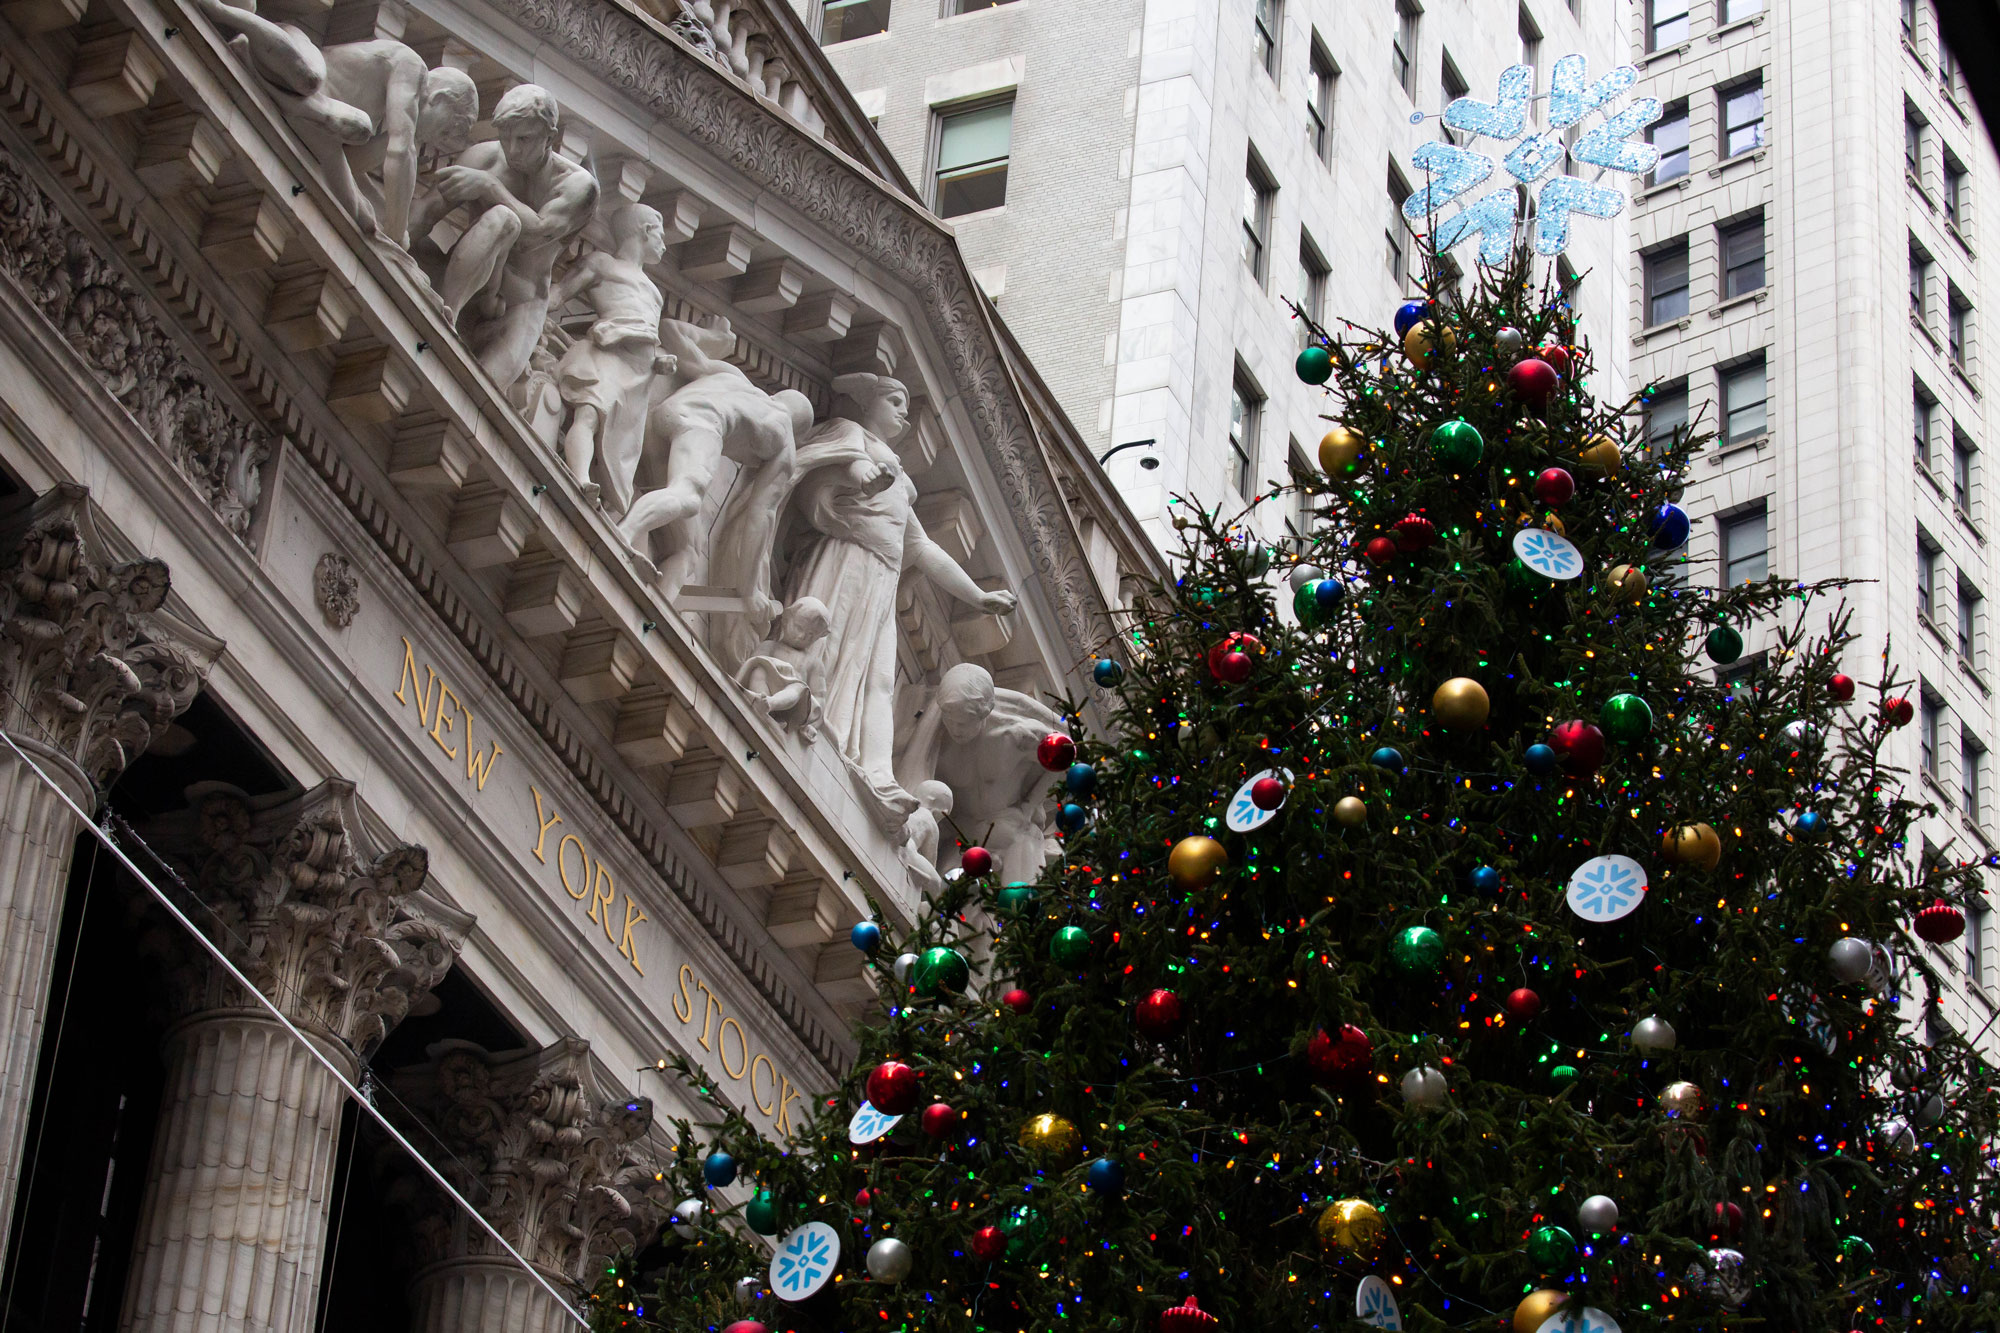 A Christmas tree stands in front of the New York Stock Exchange in New York City on December 9.